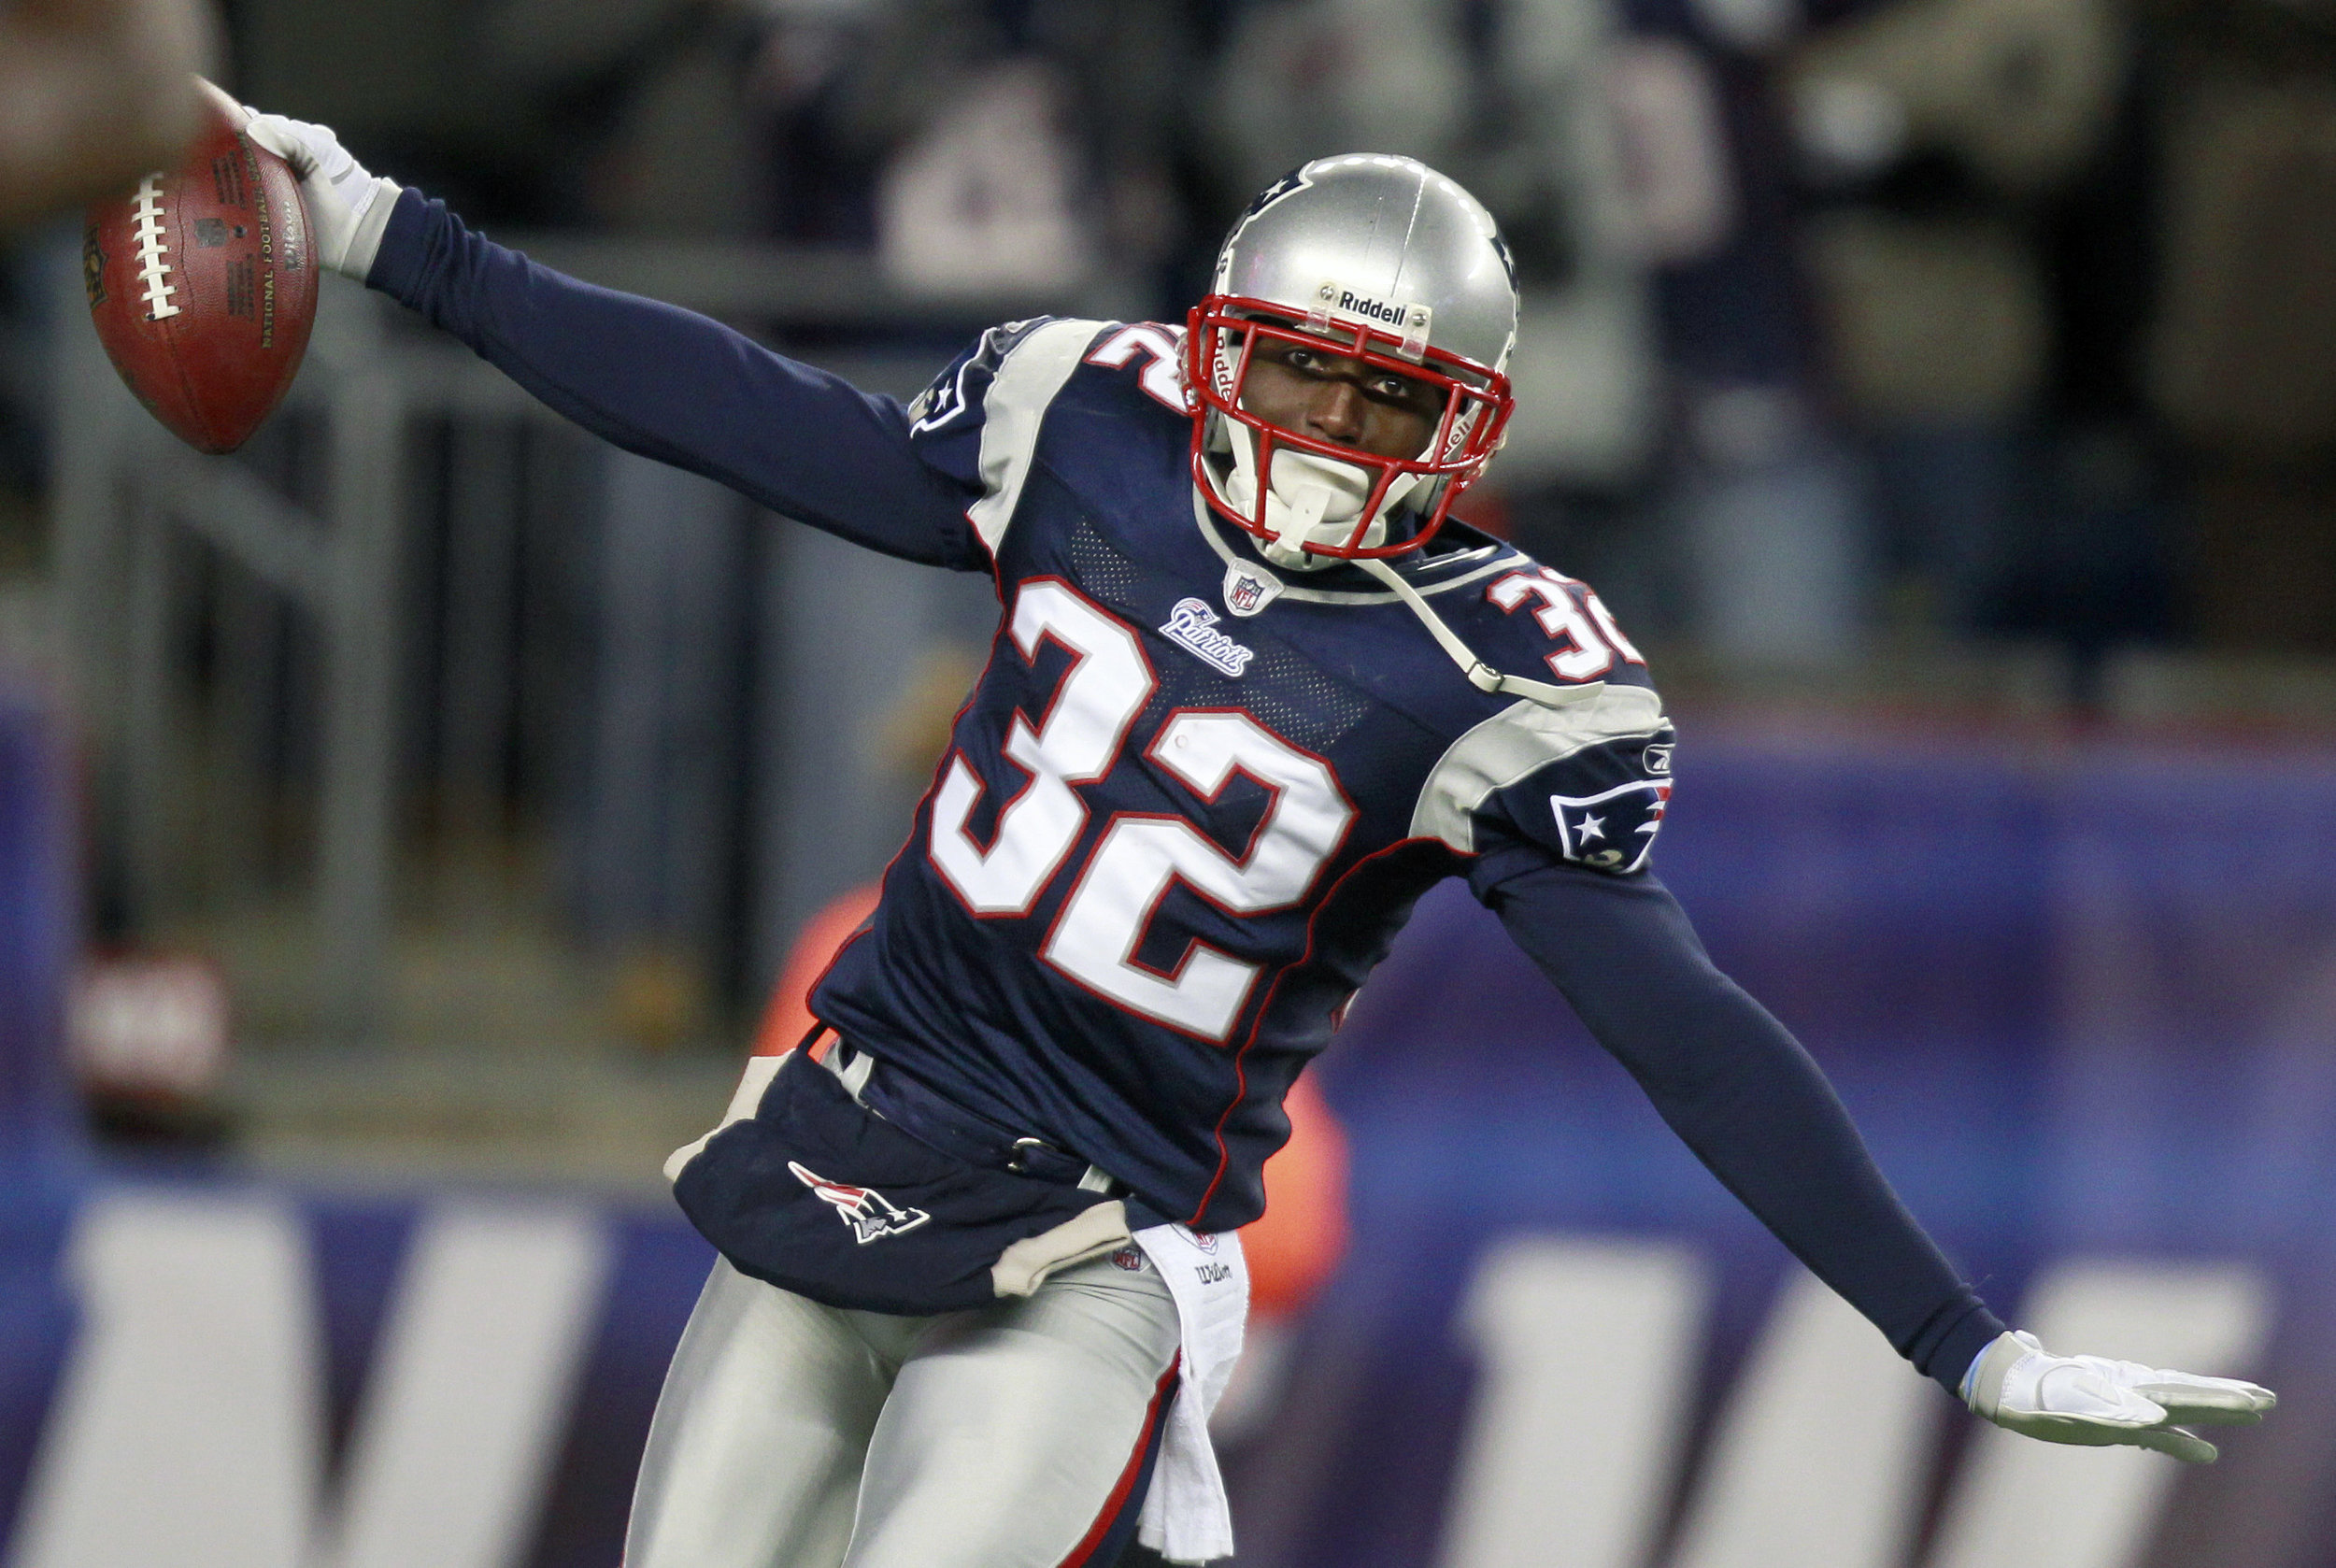 All Pro Defensive Back Devin McCourty will host a Queens DA candidates forum organized by the Players Coalition, an organization of NFL players who advocate for criminal justice reform. AP Photo/Michael Dwyer